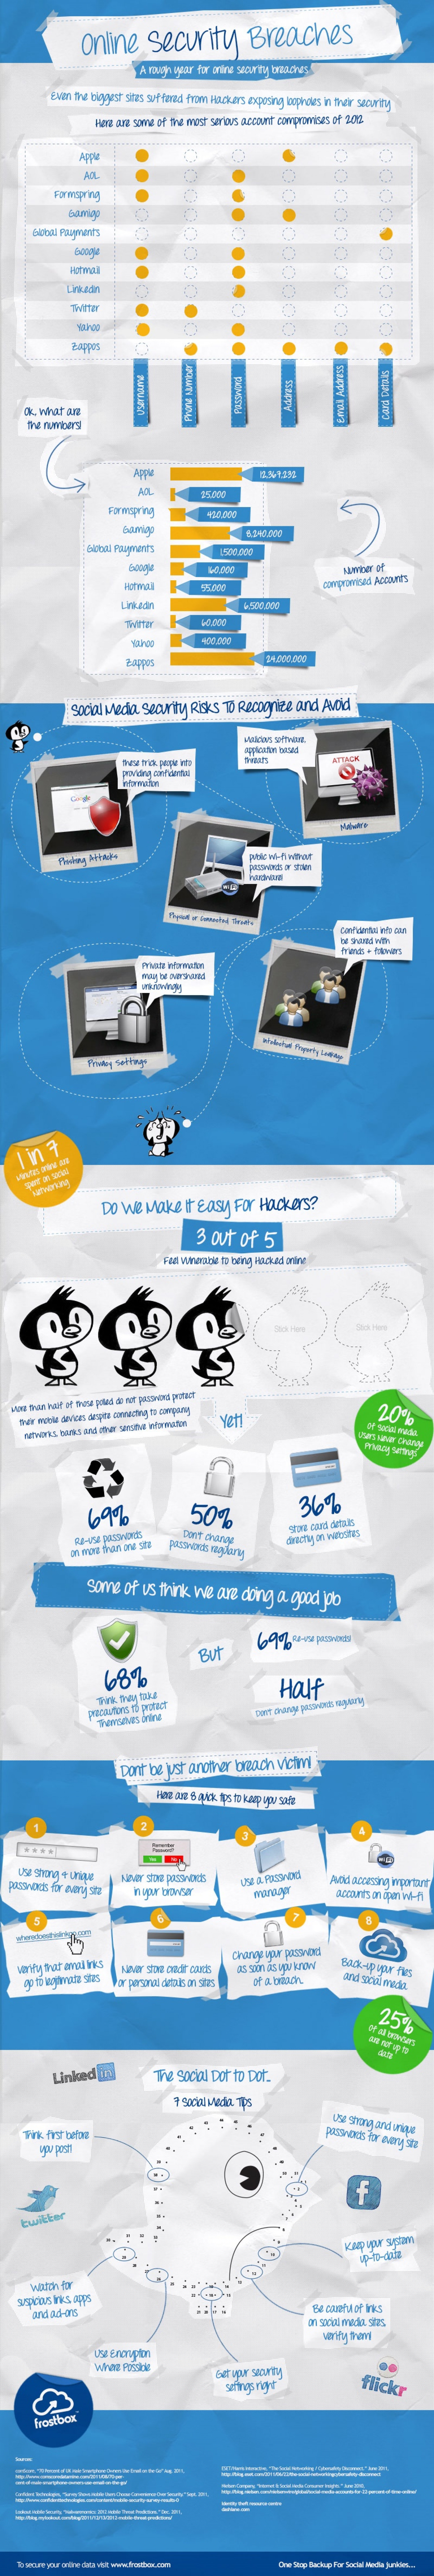 Is Your Social Media Life Ready For Armageddon? Infographic